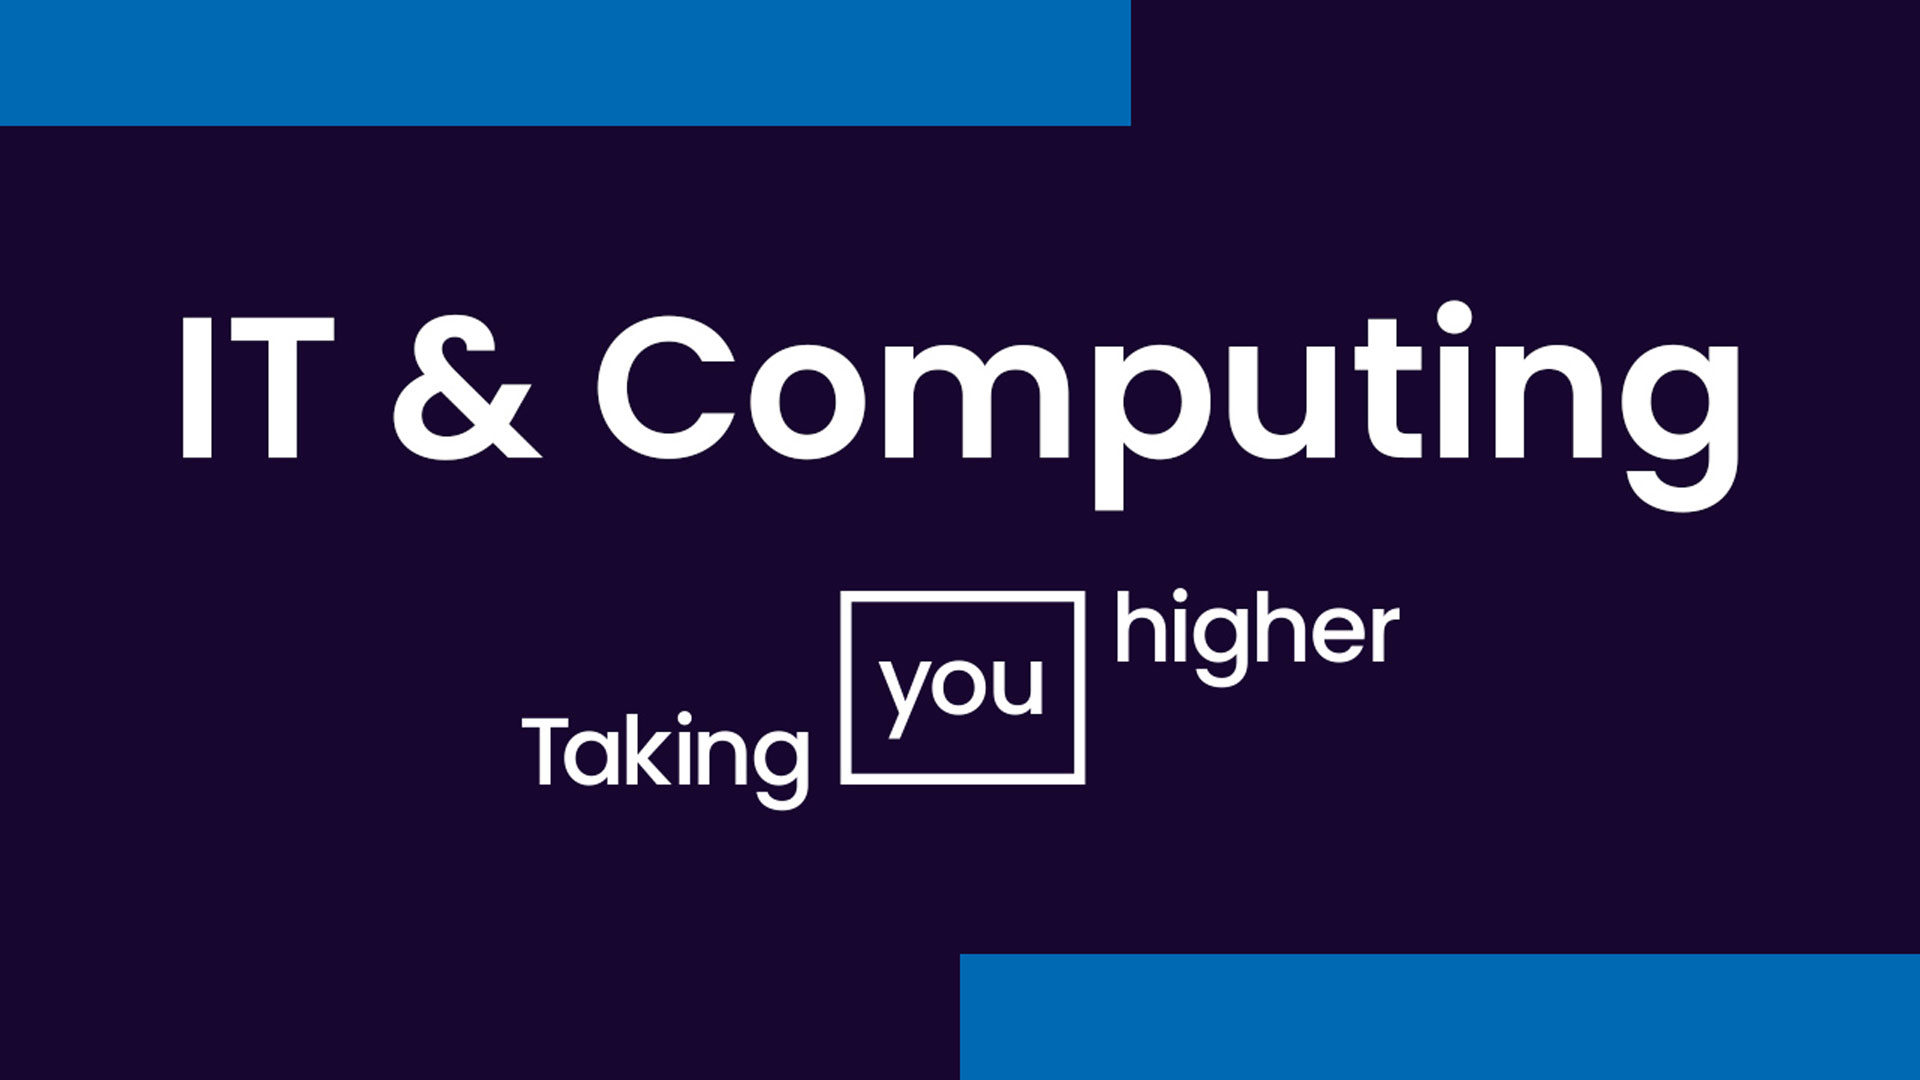 Middlesbrough College IT & Computing Courses